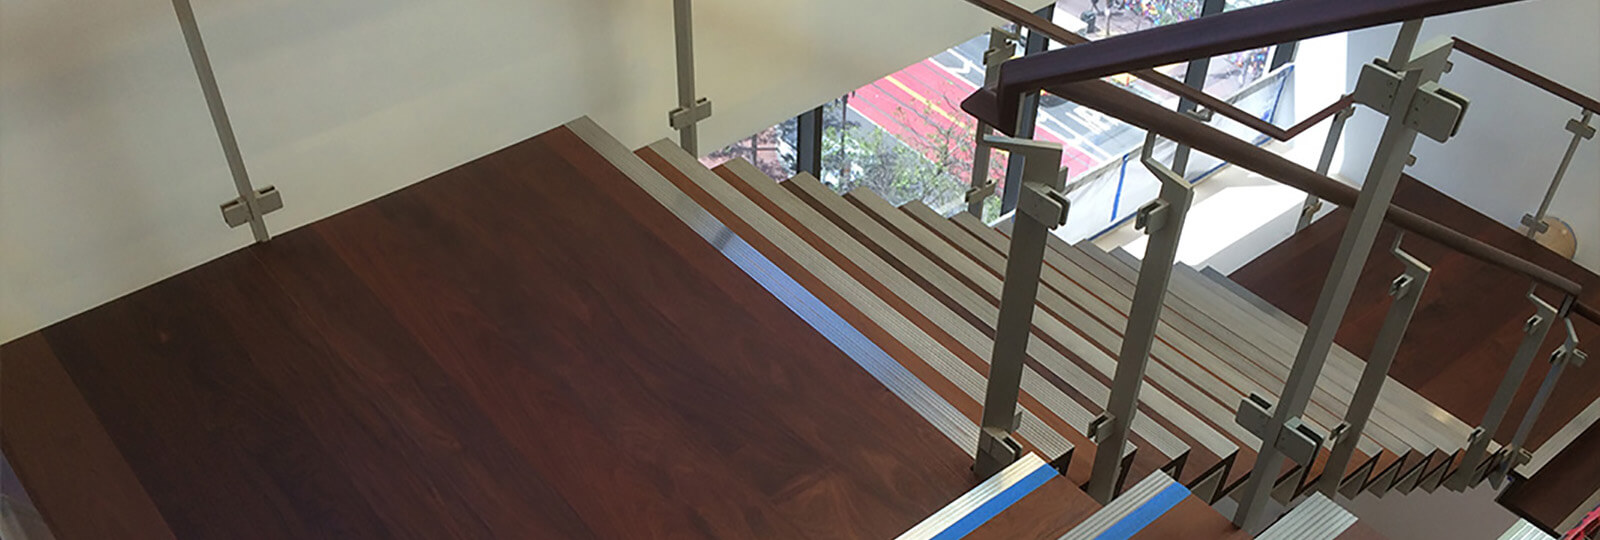 Wood Finishing Contractor for Tenant Improvements